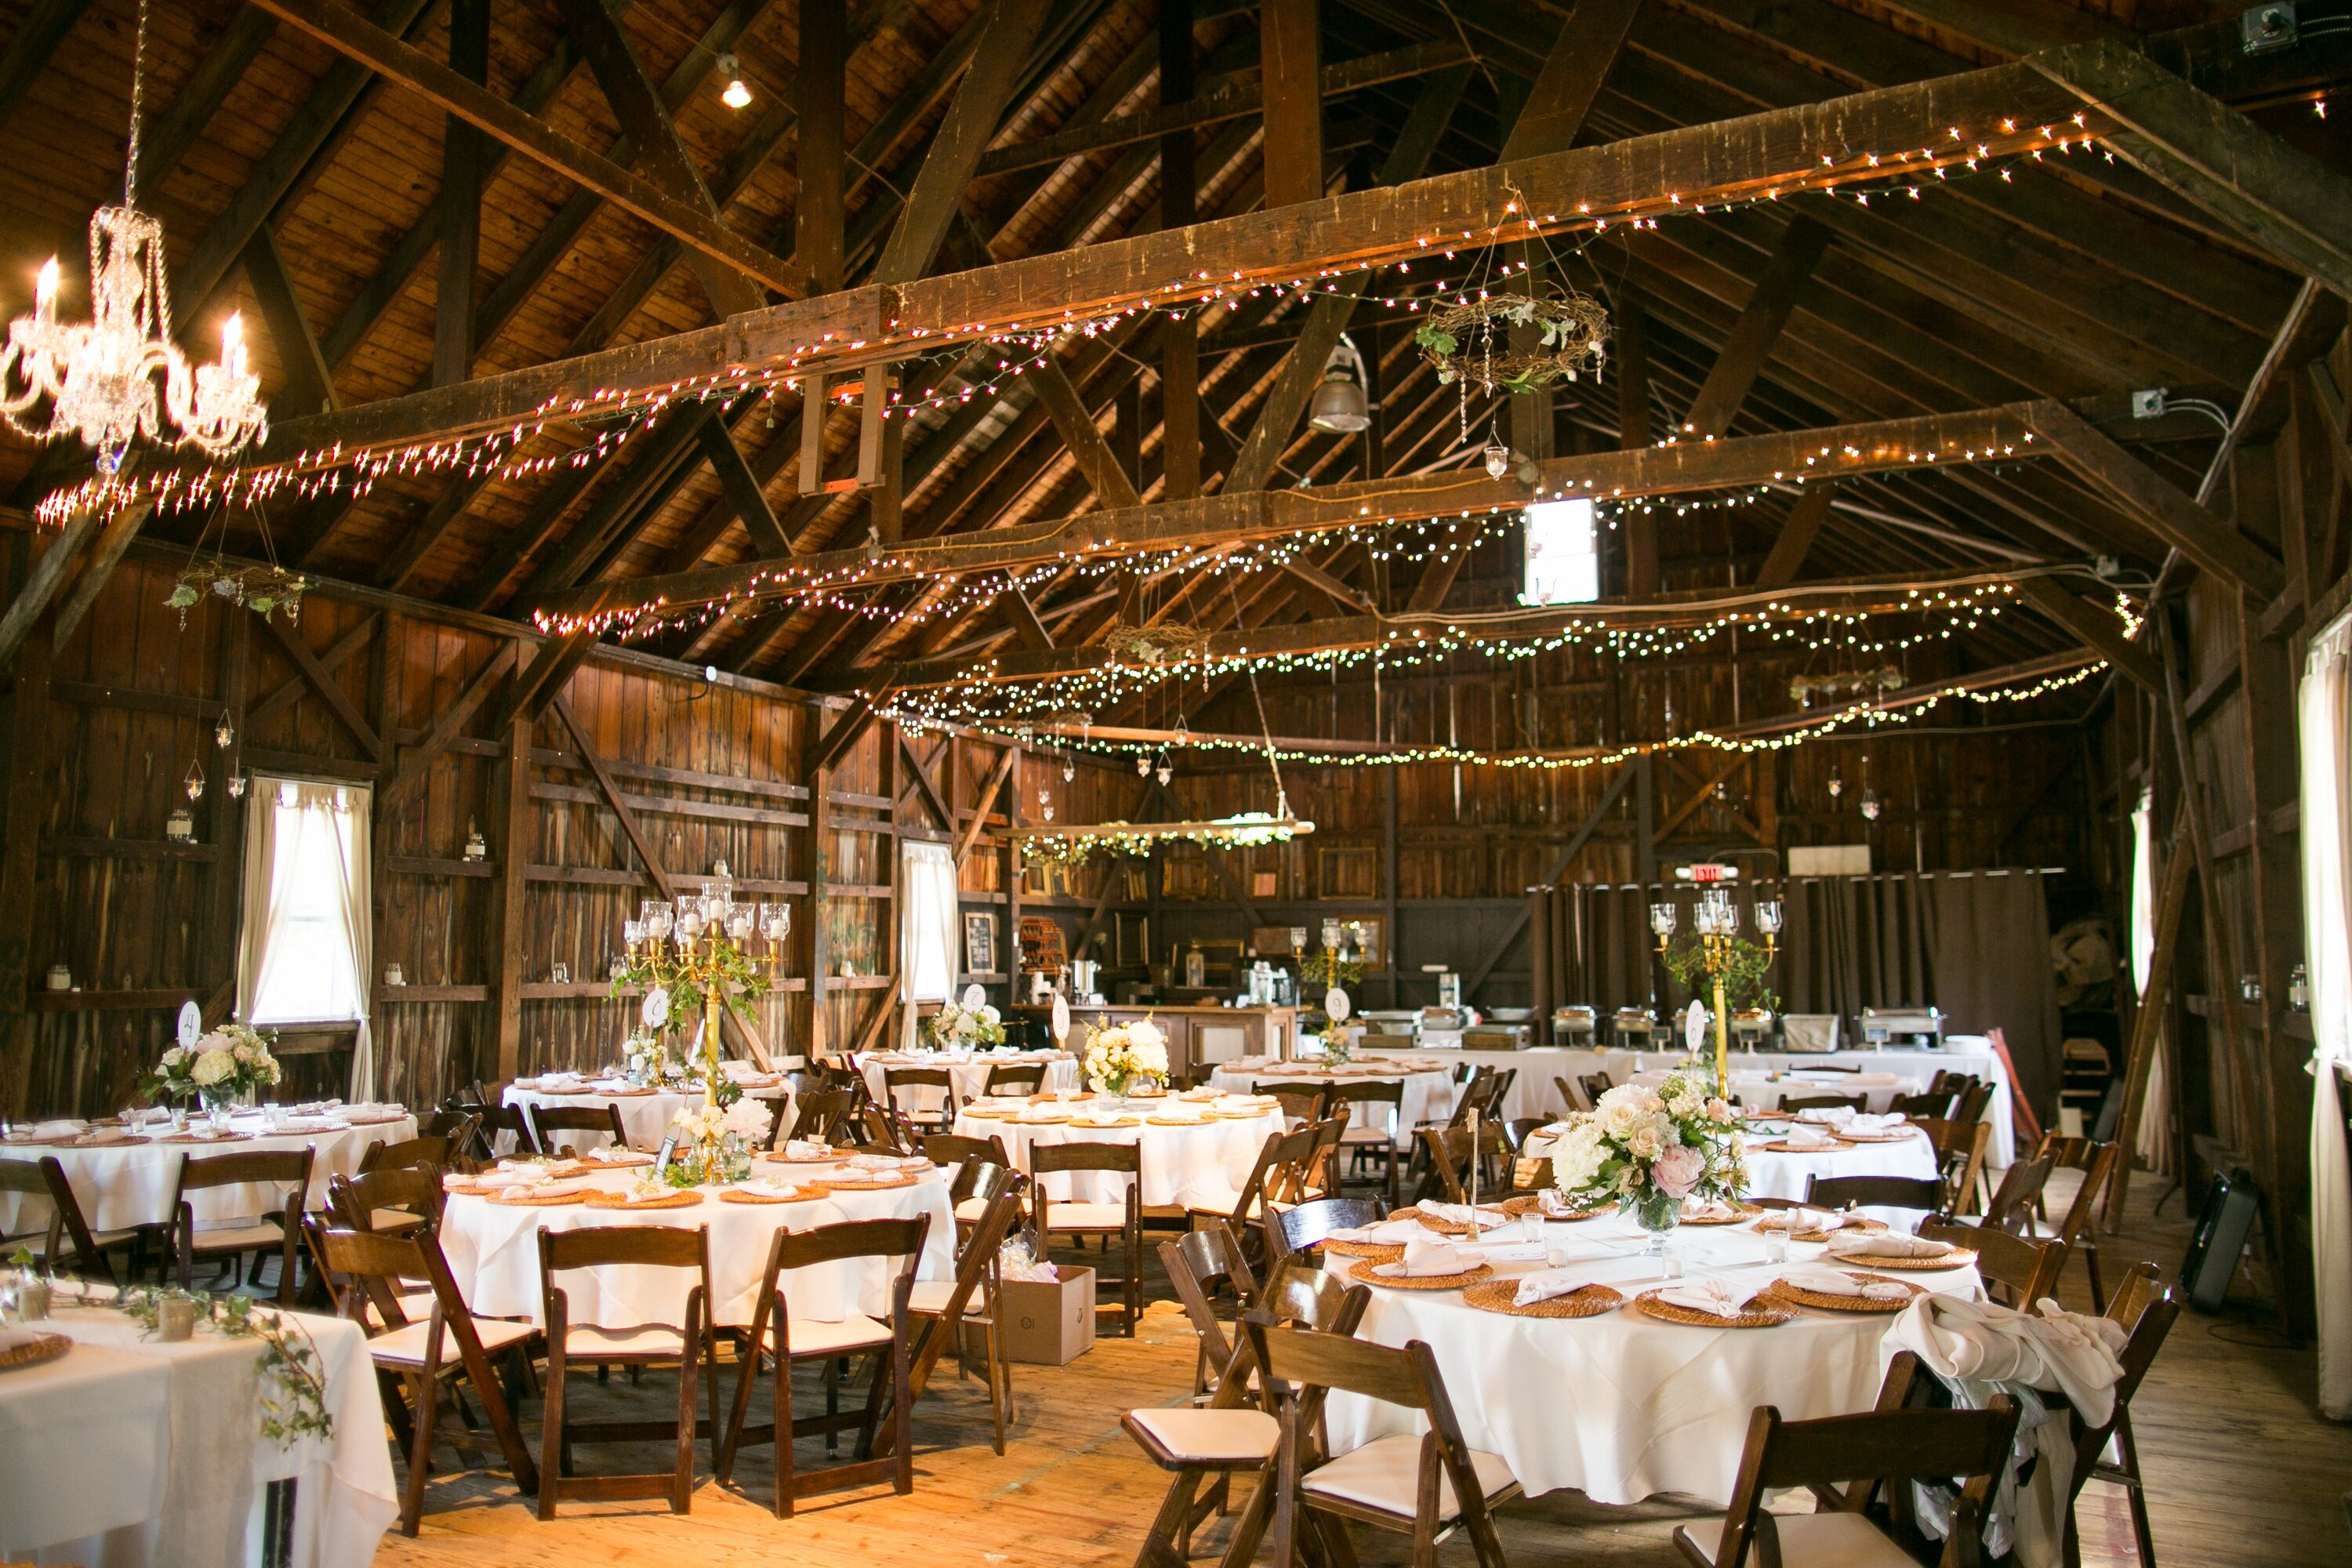 Rhodes Barn Reception With String Lights